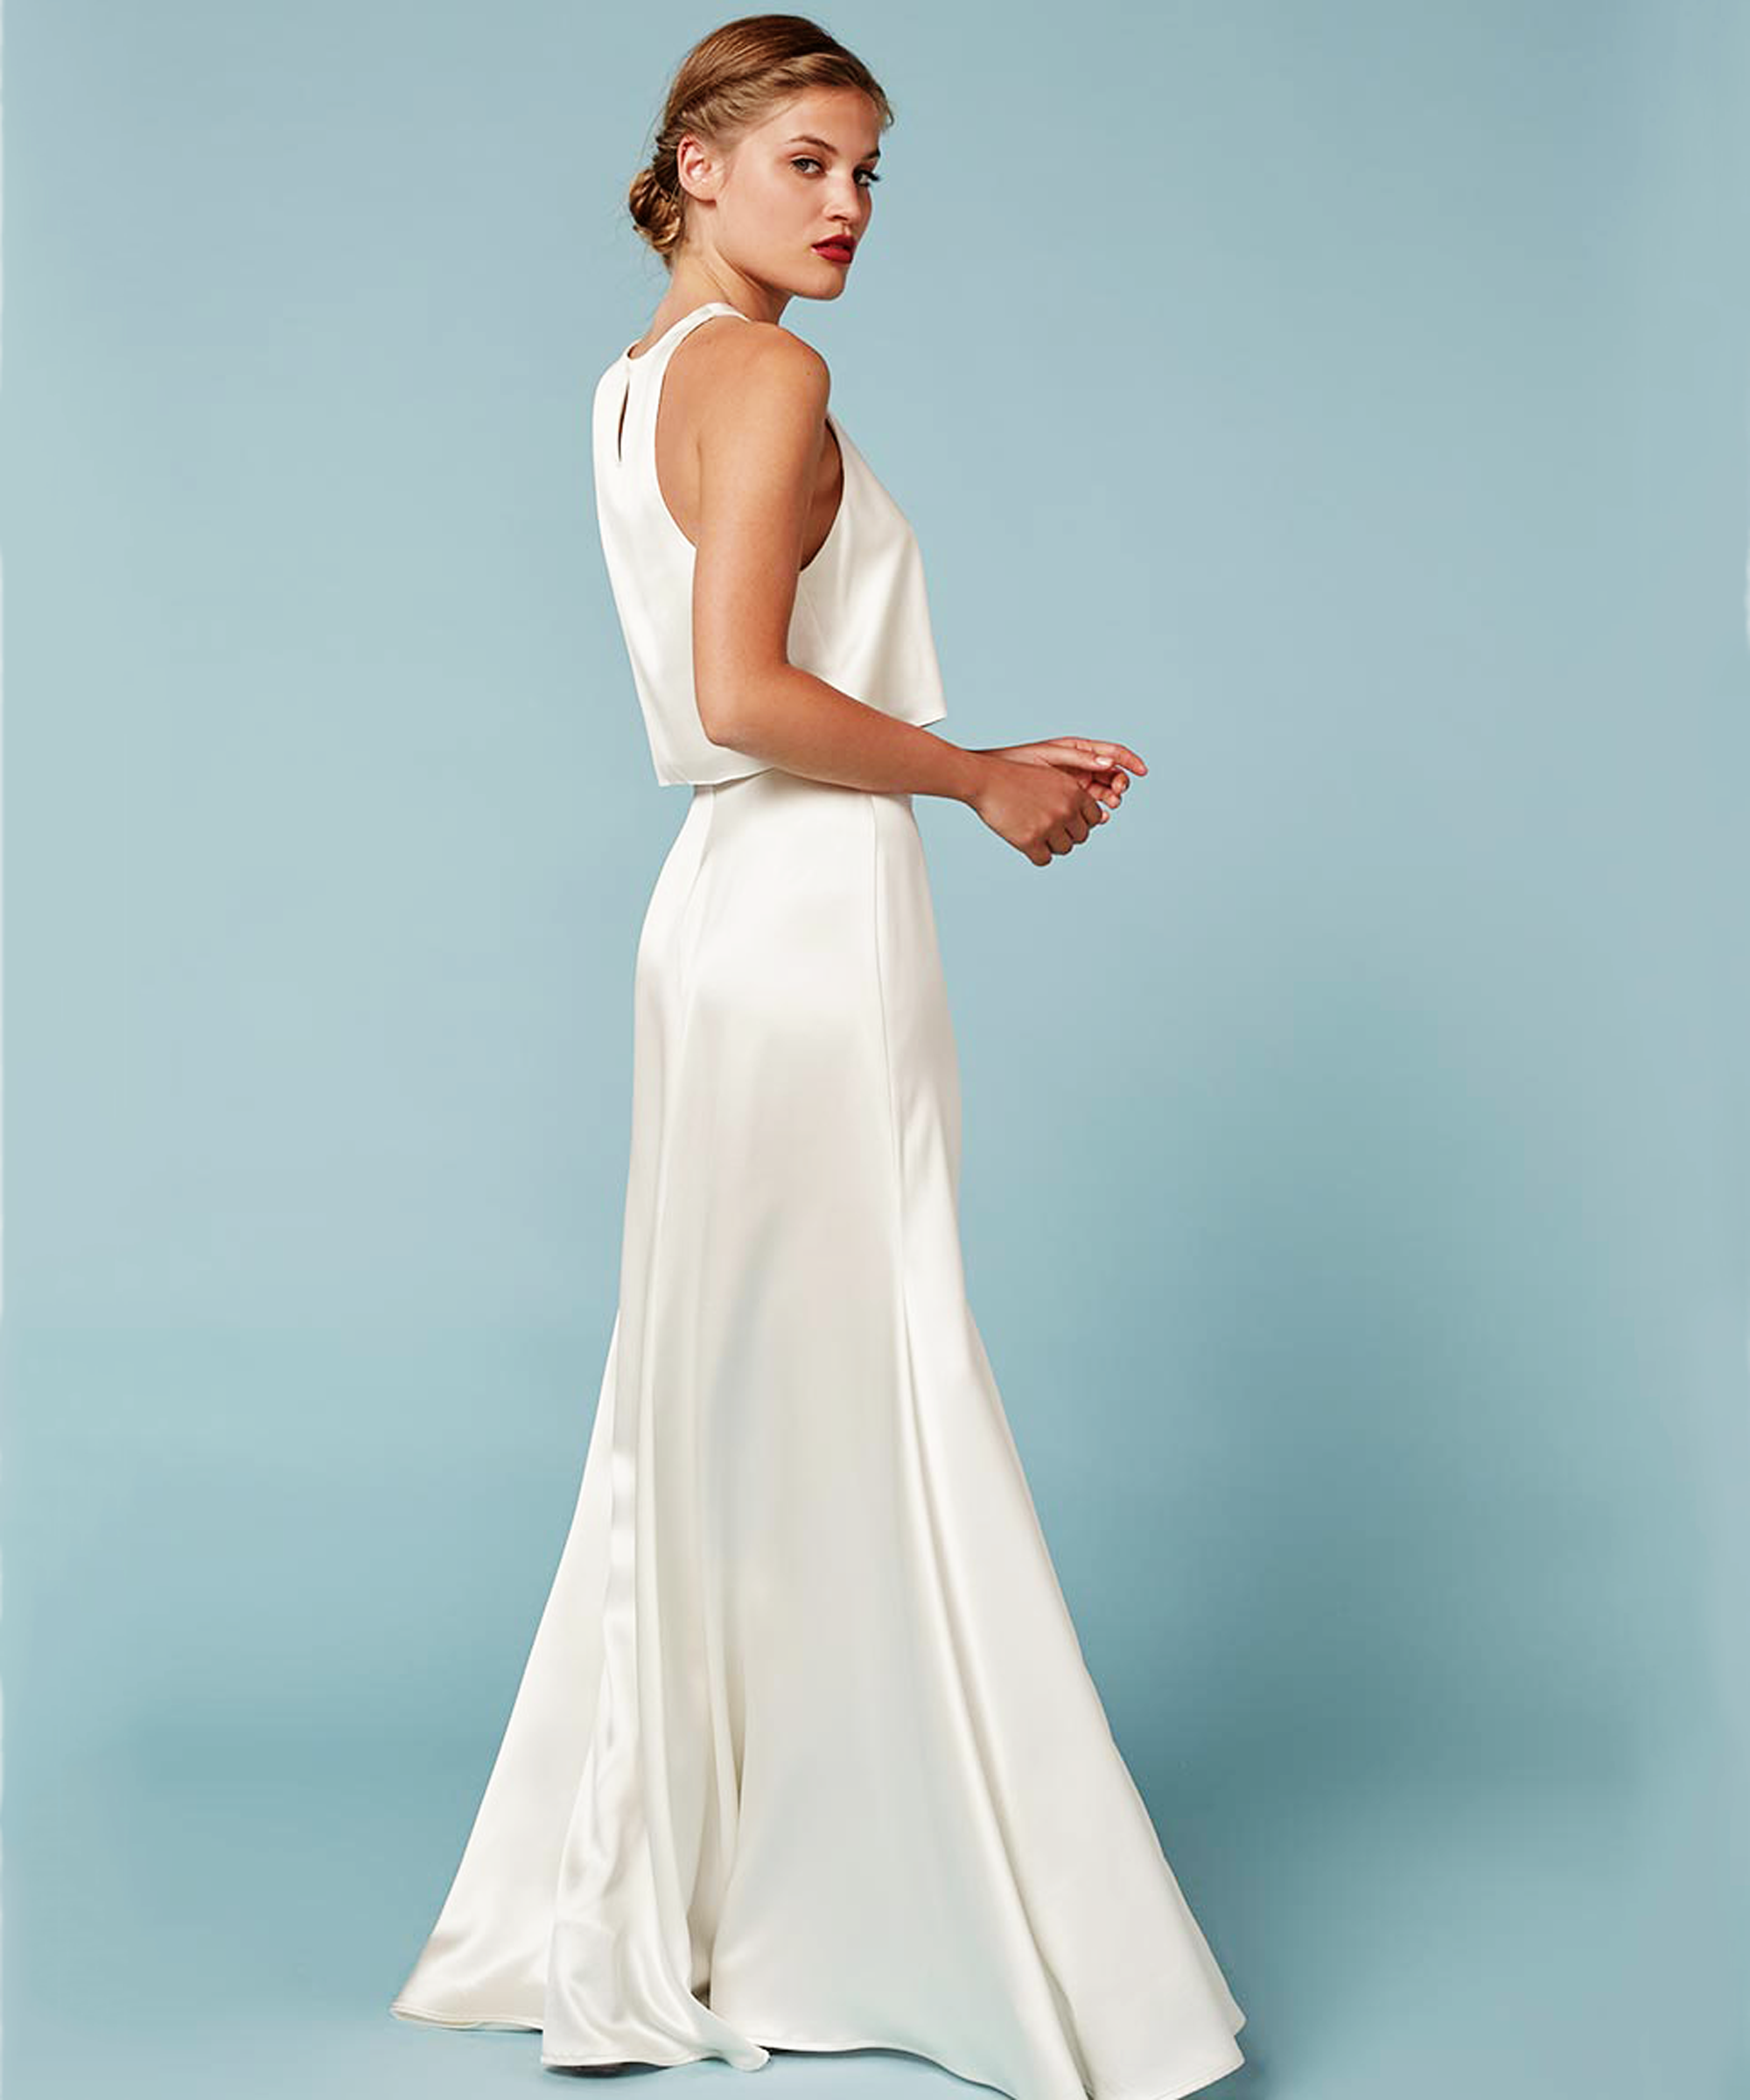 Inexpensive wedding dresses nyc wedding ideas for Affordable wedding dresses in nyc